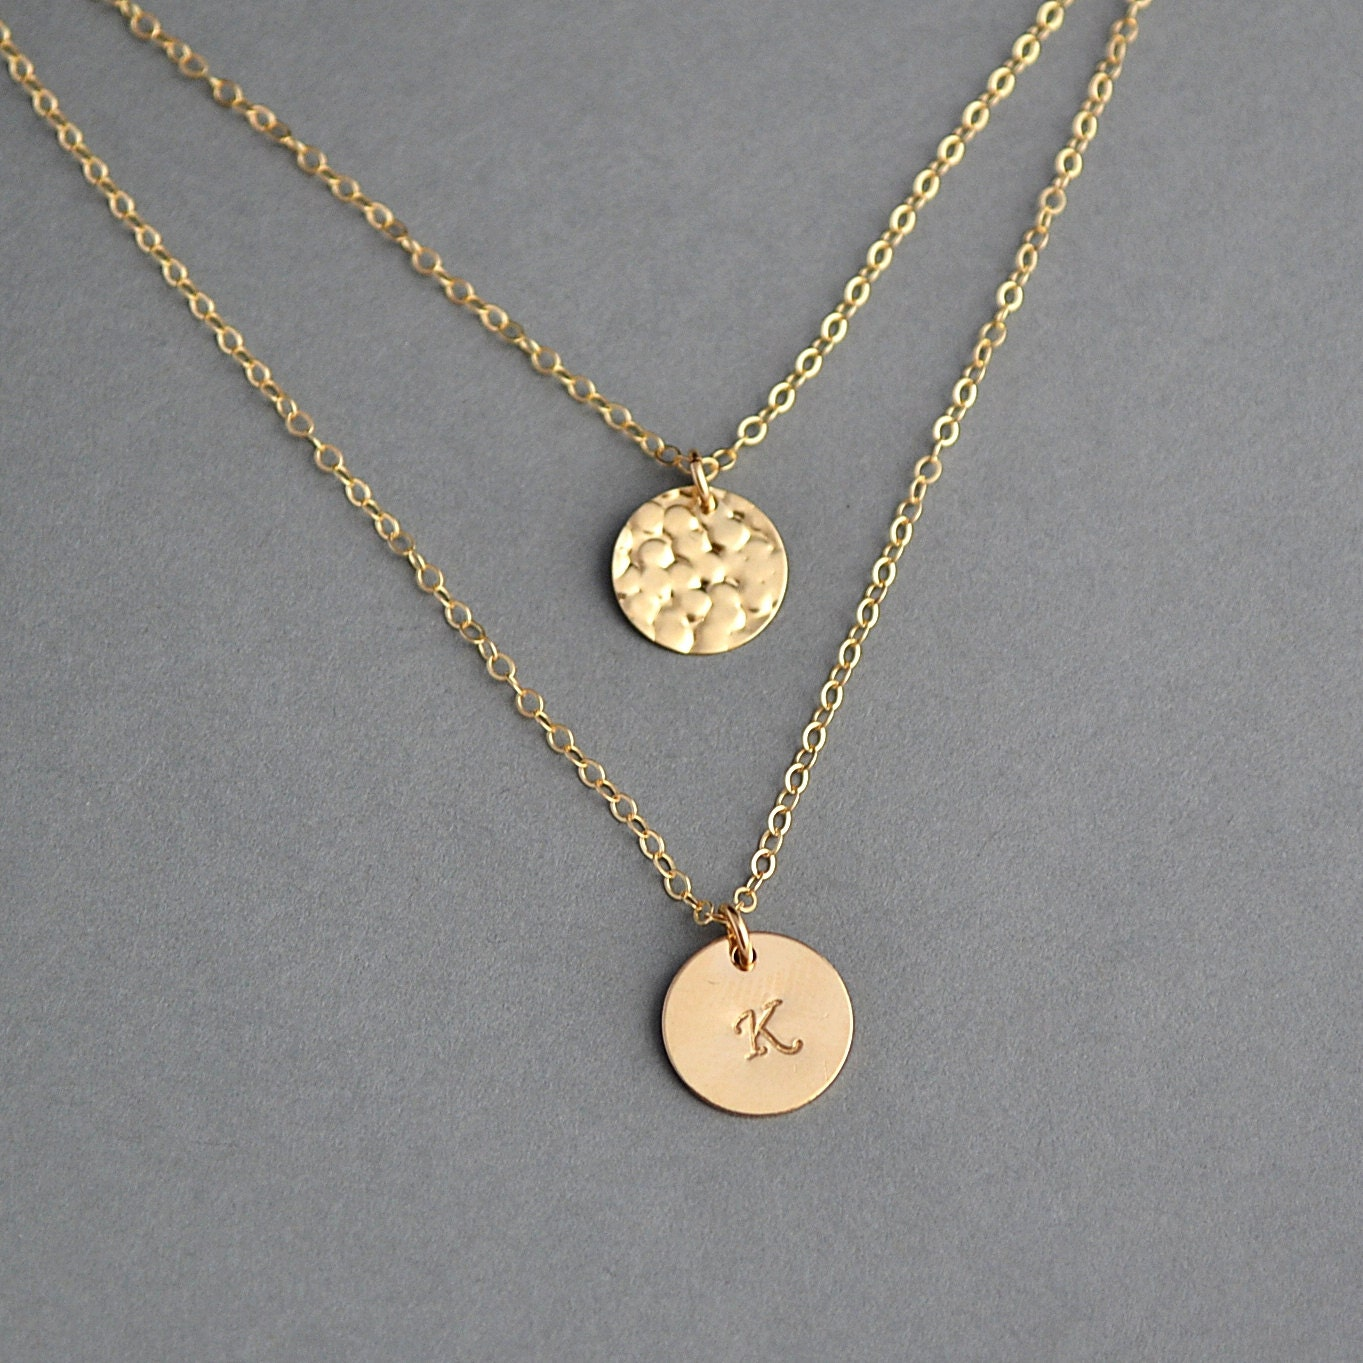 layering necklace layered disc necklace initial necklace. Black Bedroom Furniture Sets. Home Design Ideas